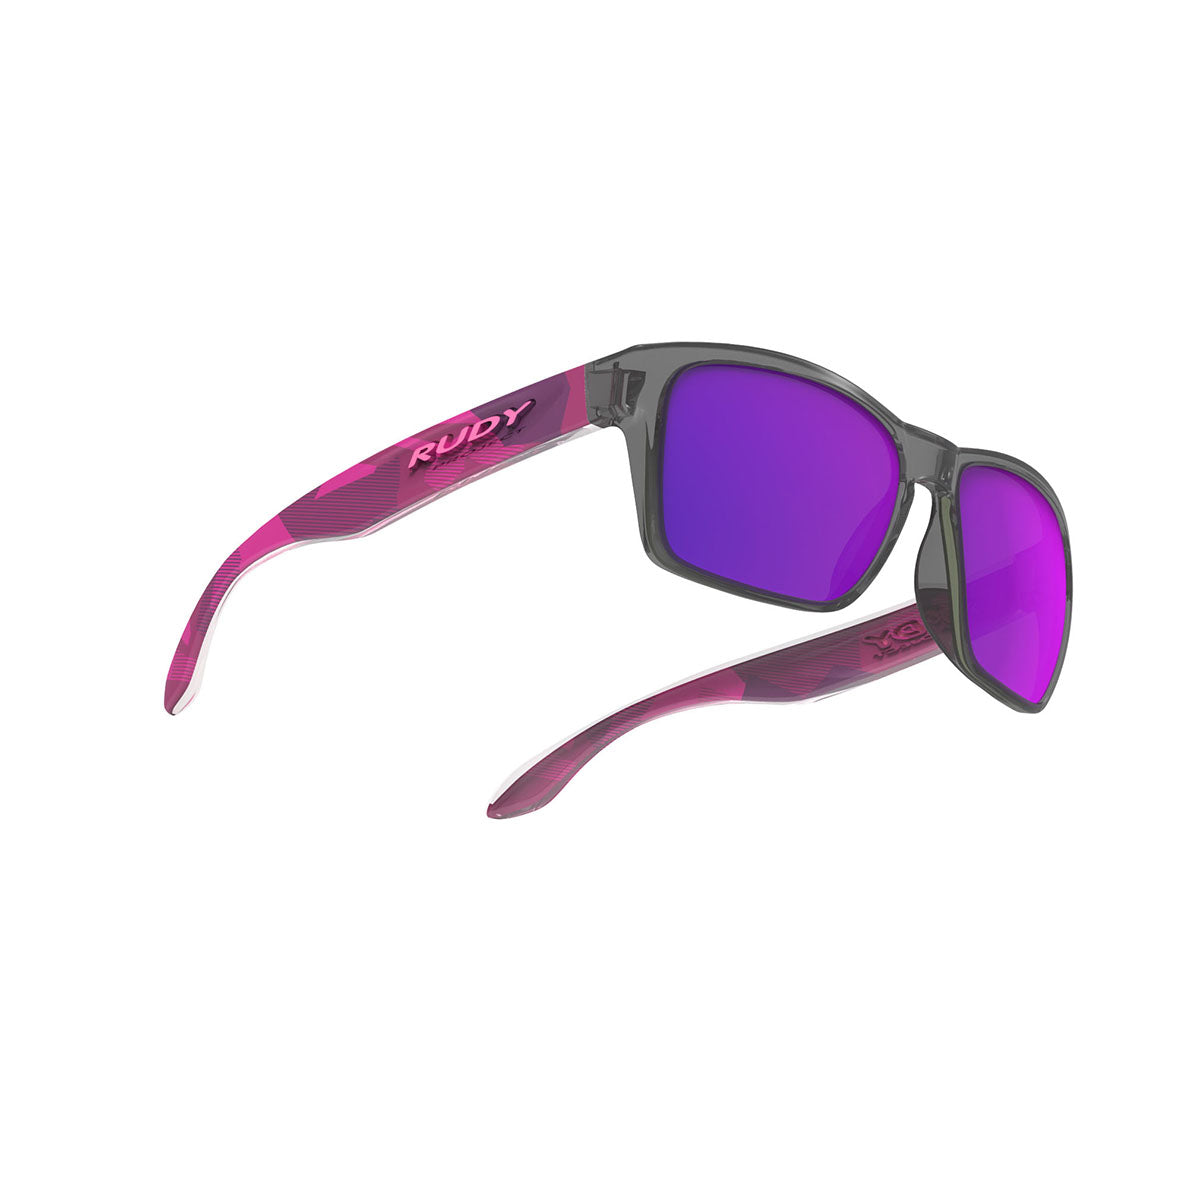 Rudy Project - Spinhawk Slim - frame color: Neo Camo Crystal Wine - lens color: Multilaser Violet - Bumper Color:  - photo angle: Bottom Front Angle Variant Hover Image